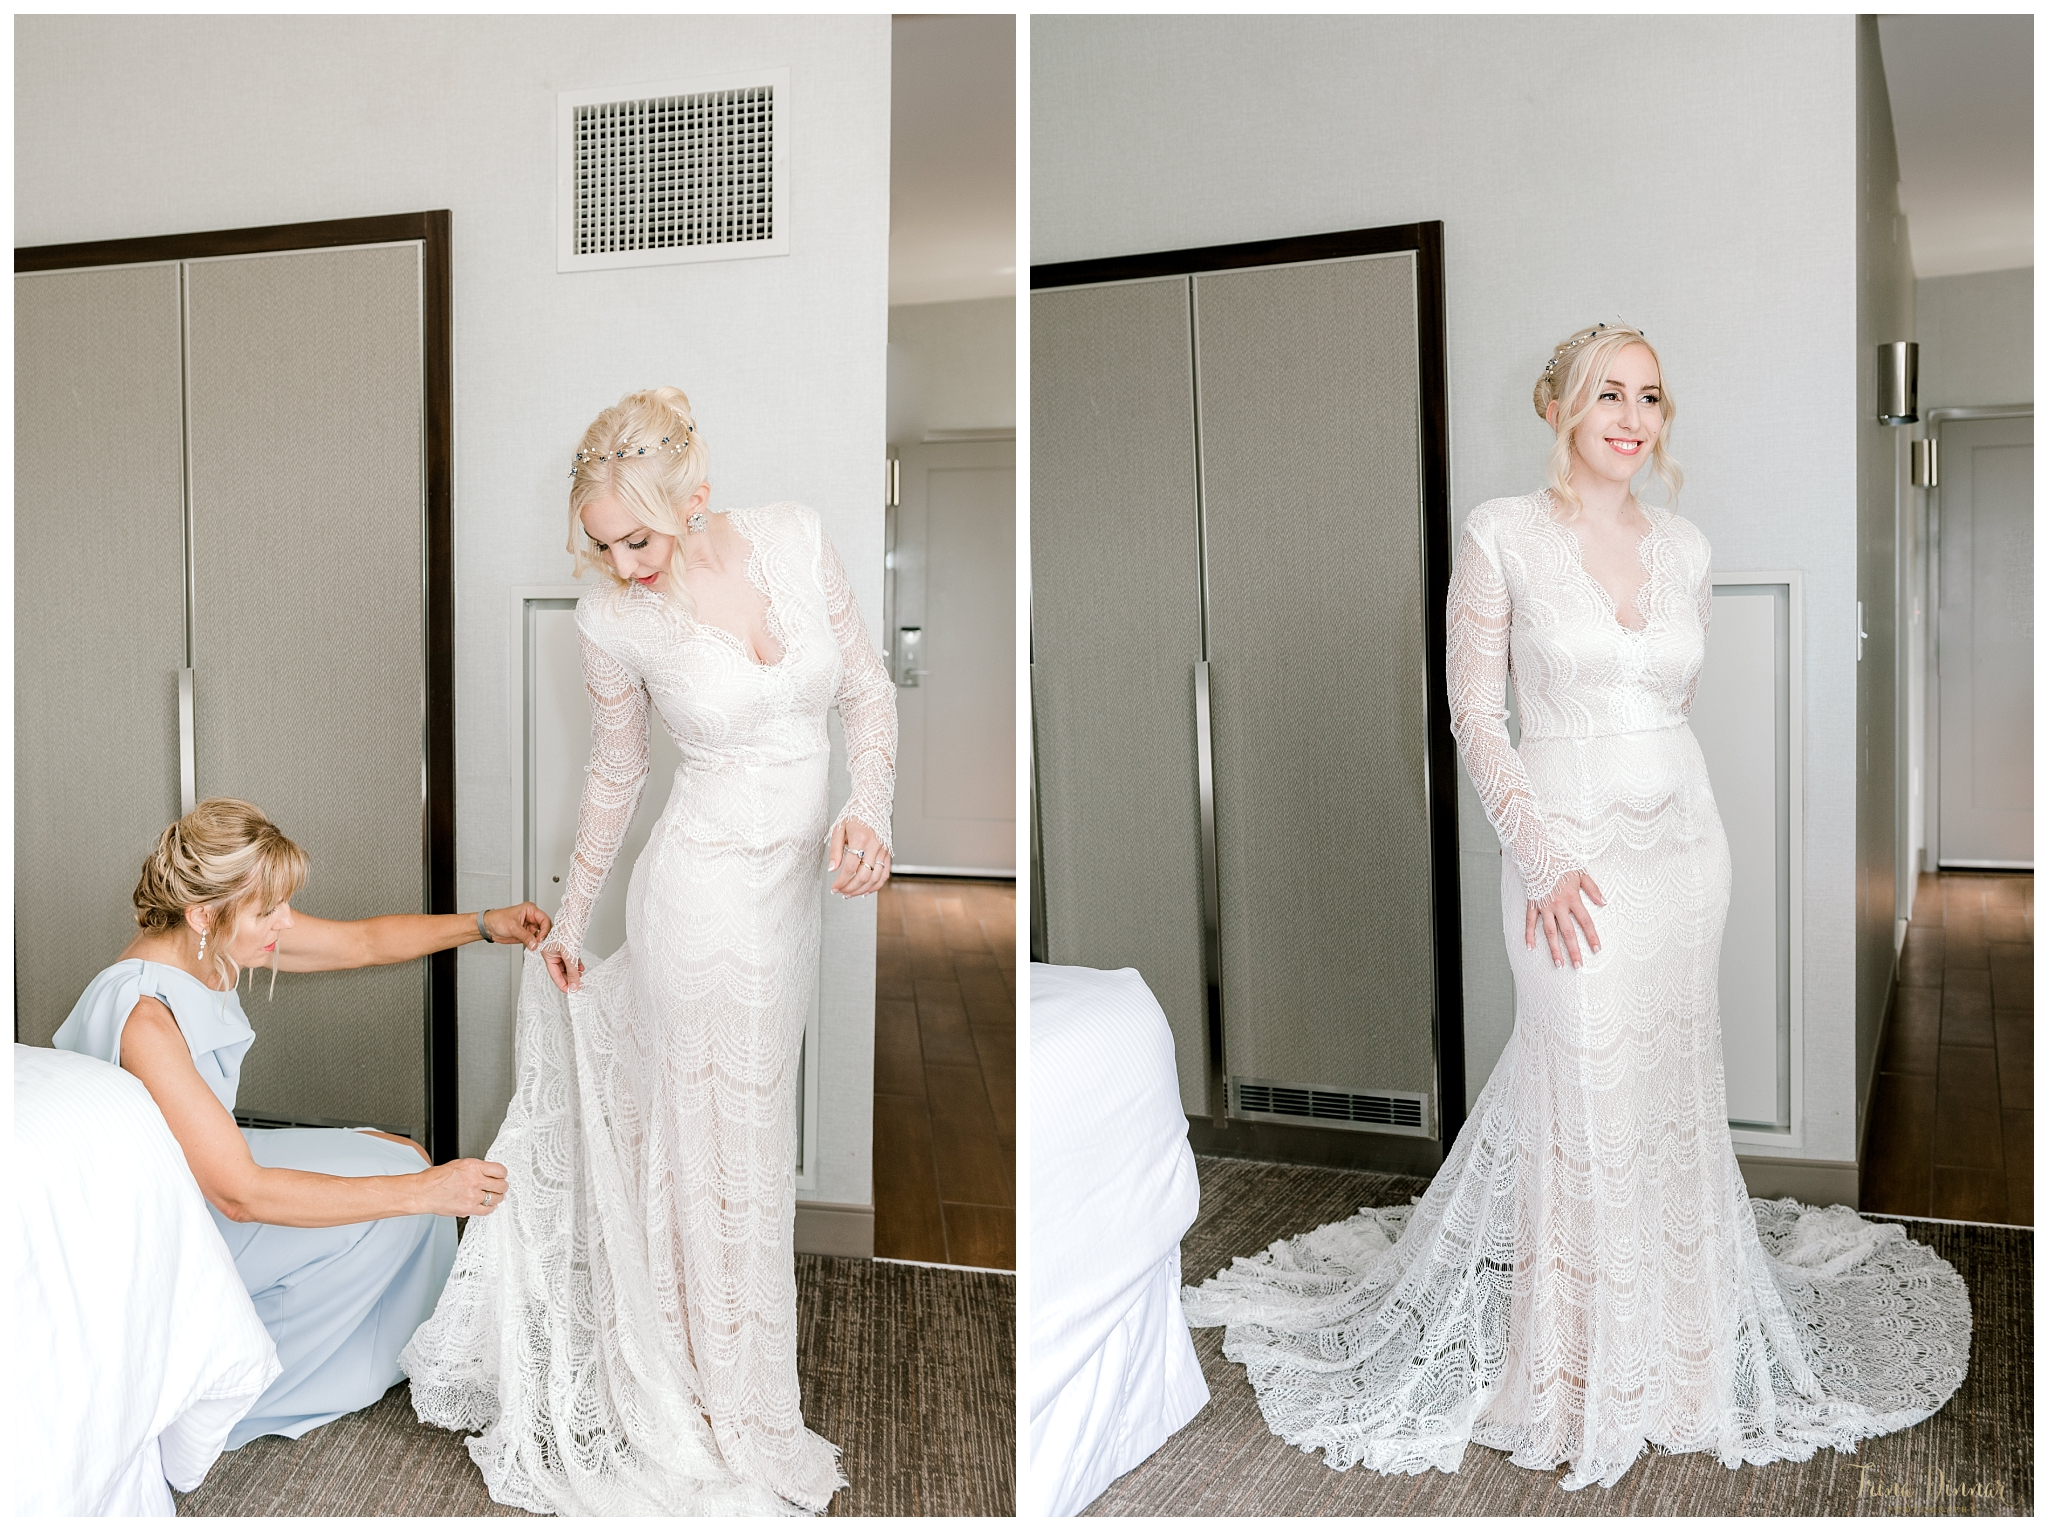 Bride Getting Ready at The Westin Harborview Hotel in Portland, Maine